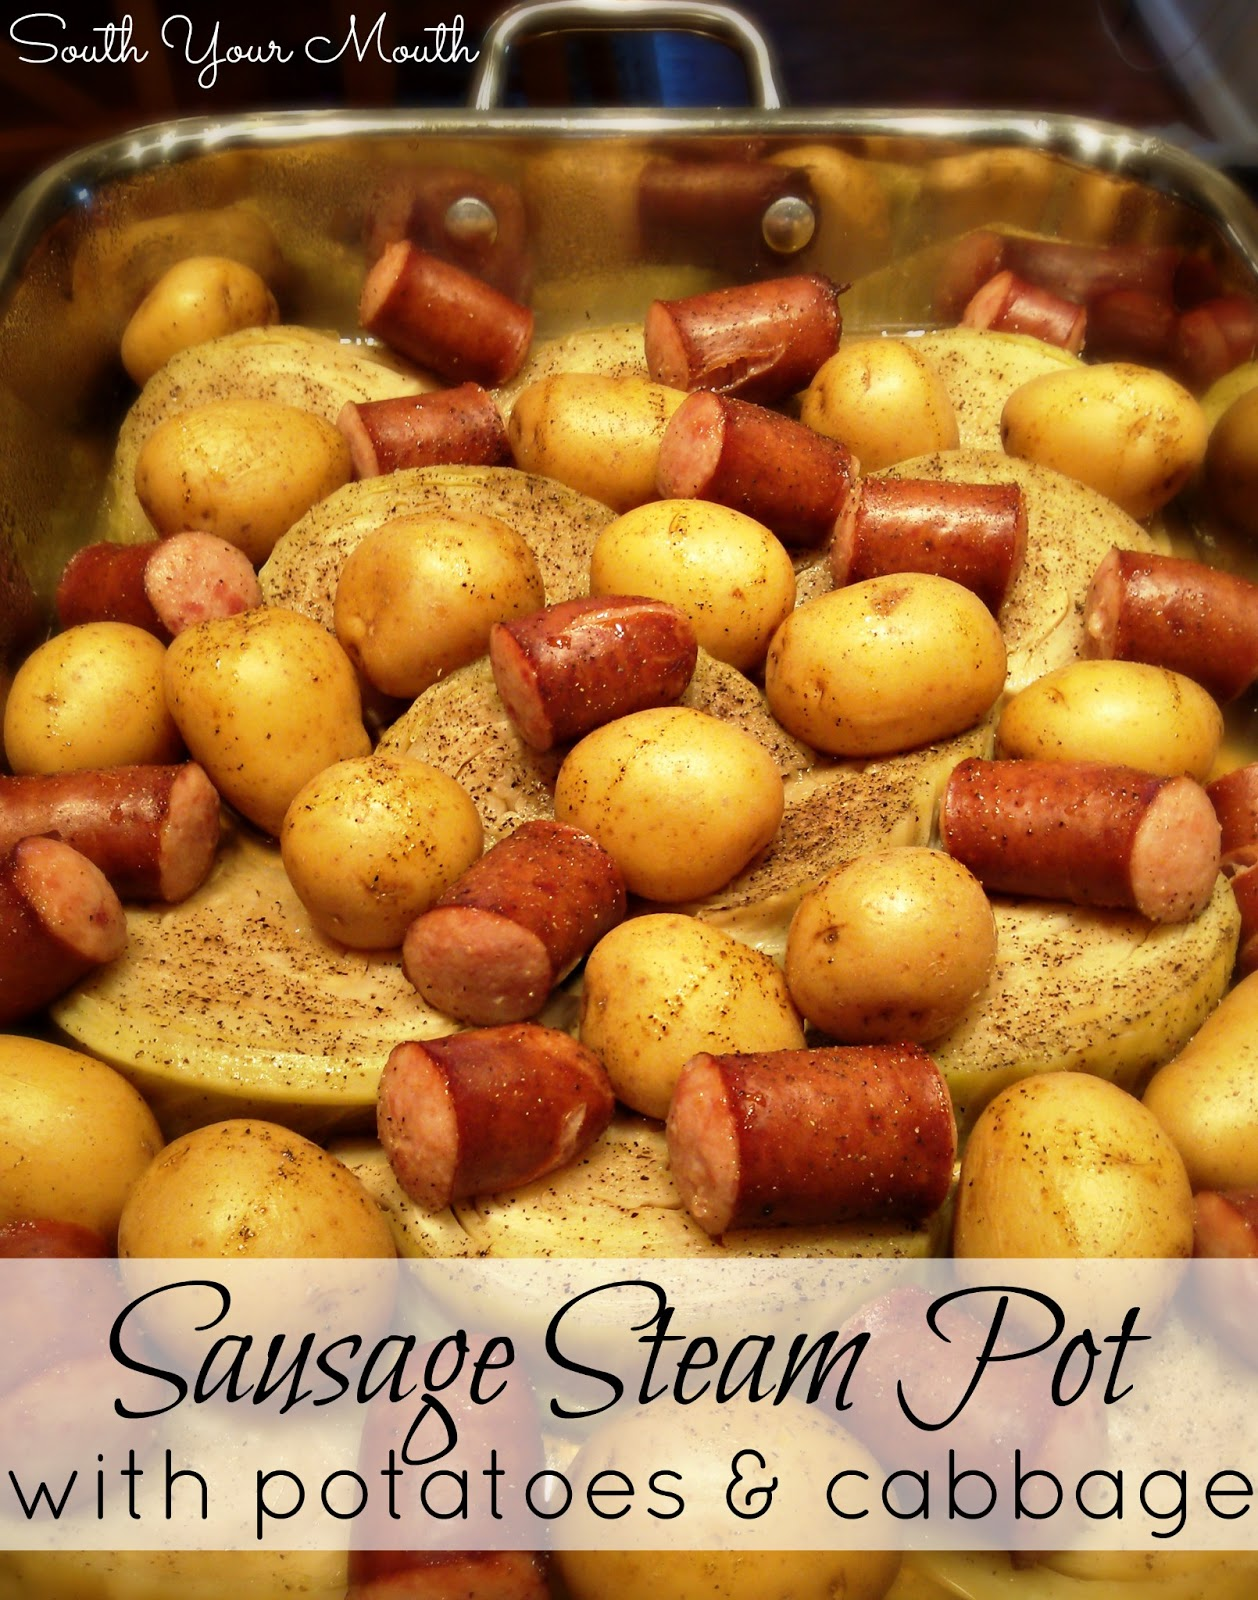 sausage steam pot with potatoes cabbage 2 pounds smoked sausage